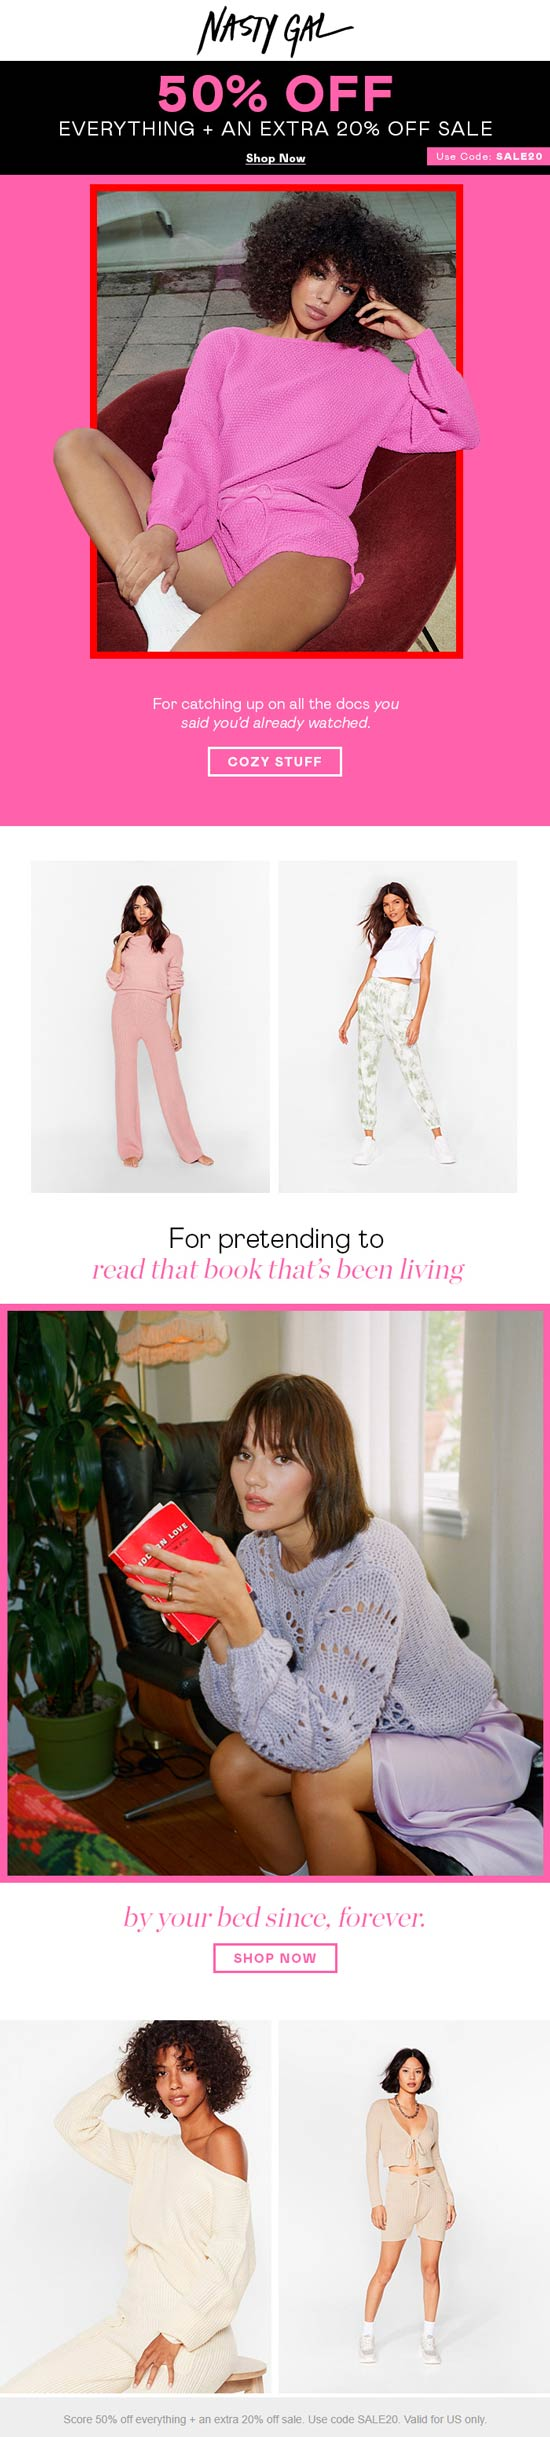 50% off everything & extra 20% off sale items today at Nasty Gal via promo code SALE20 #nastygal